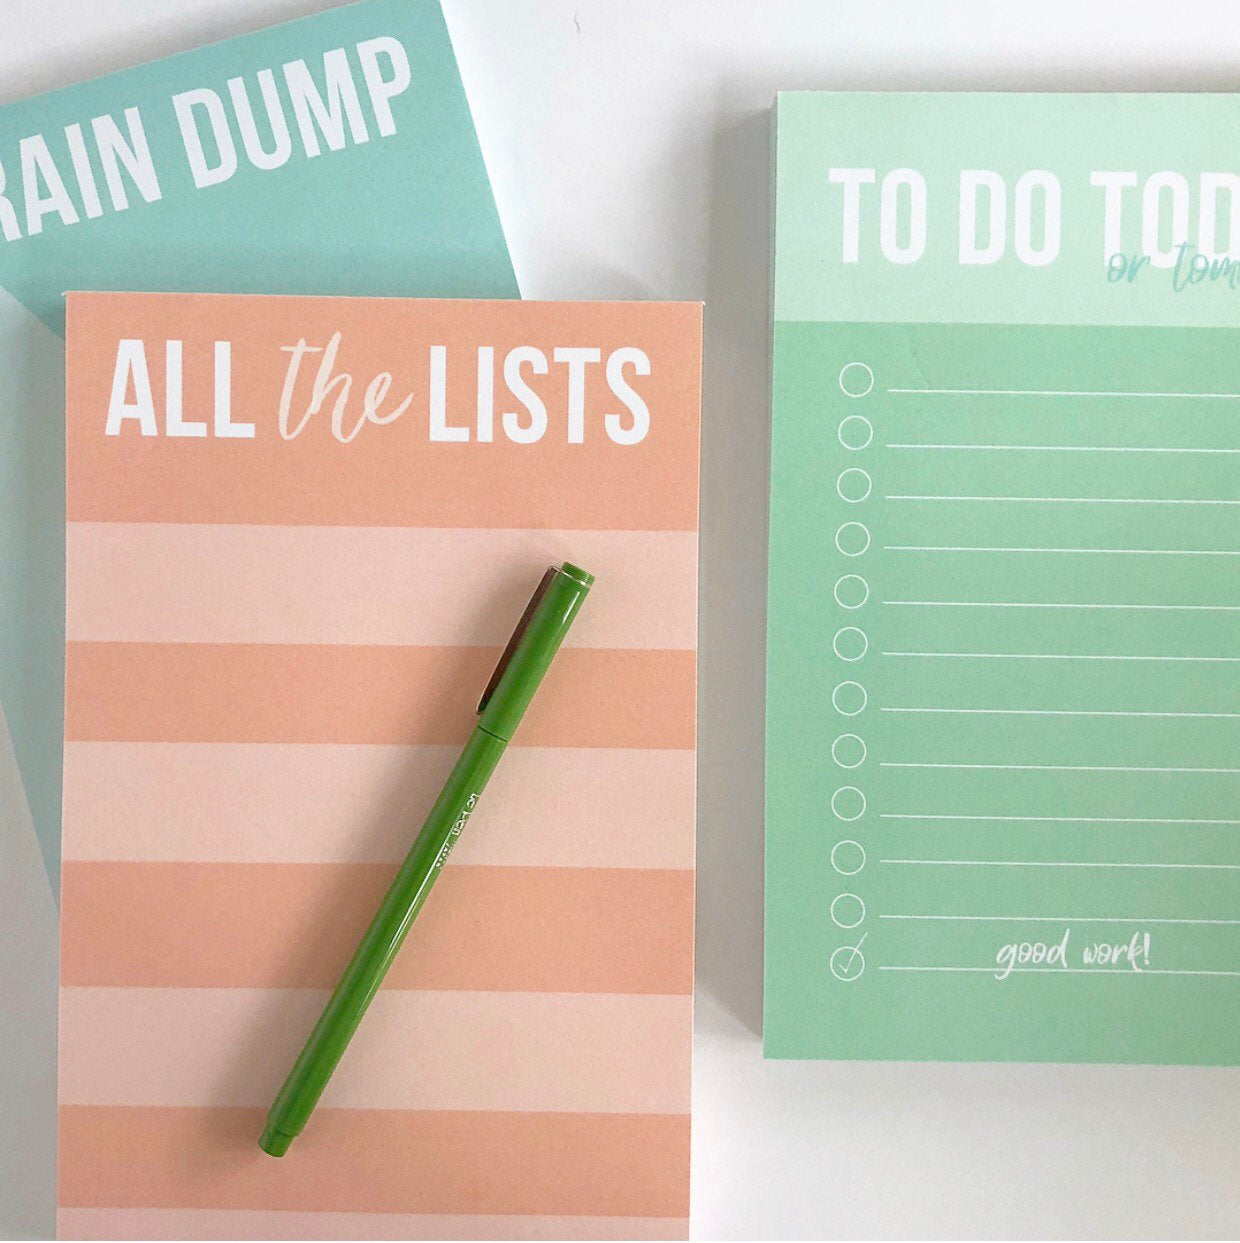 Set of notepads, All the lists, To do (today) & Brain Dump, Notepads, Desk Accessory - Joy Creative Shop